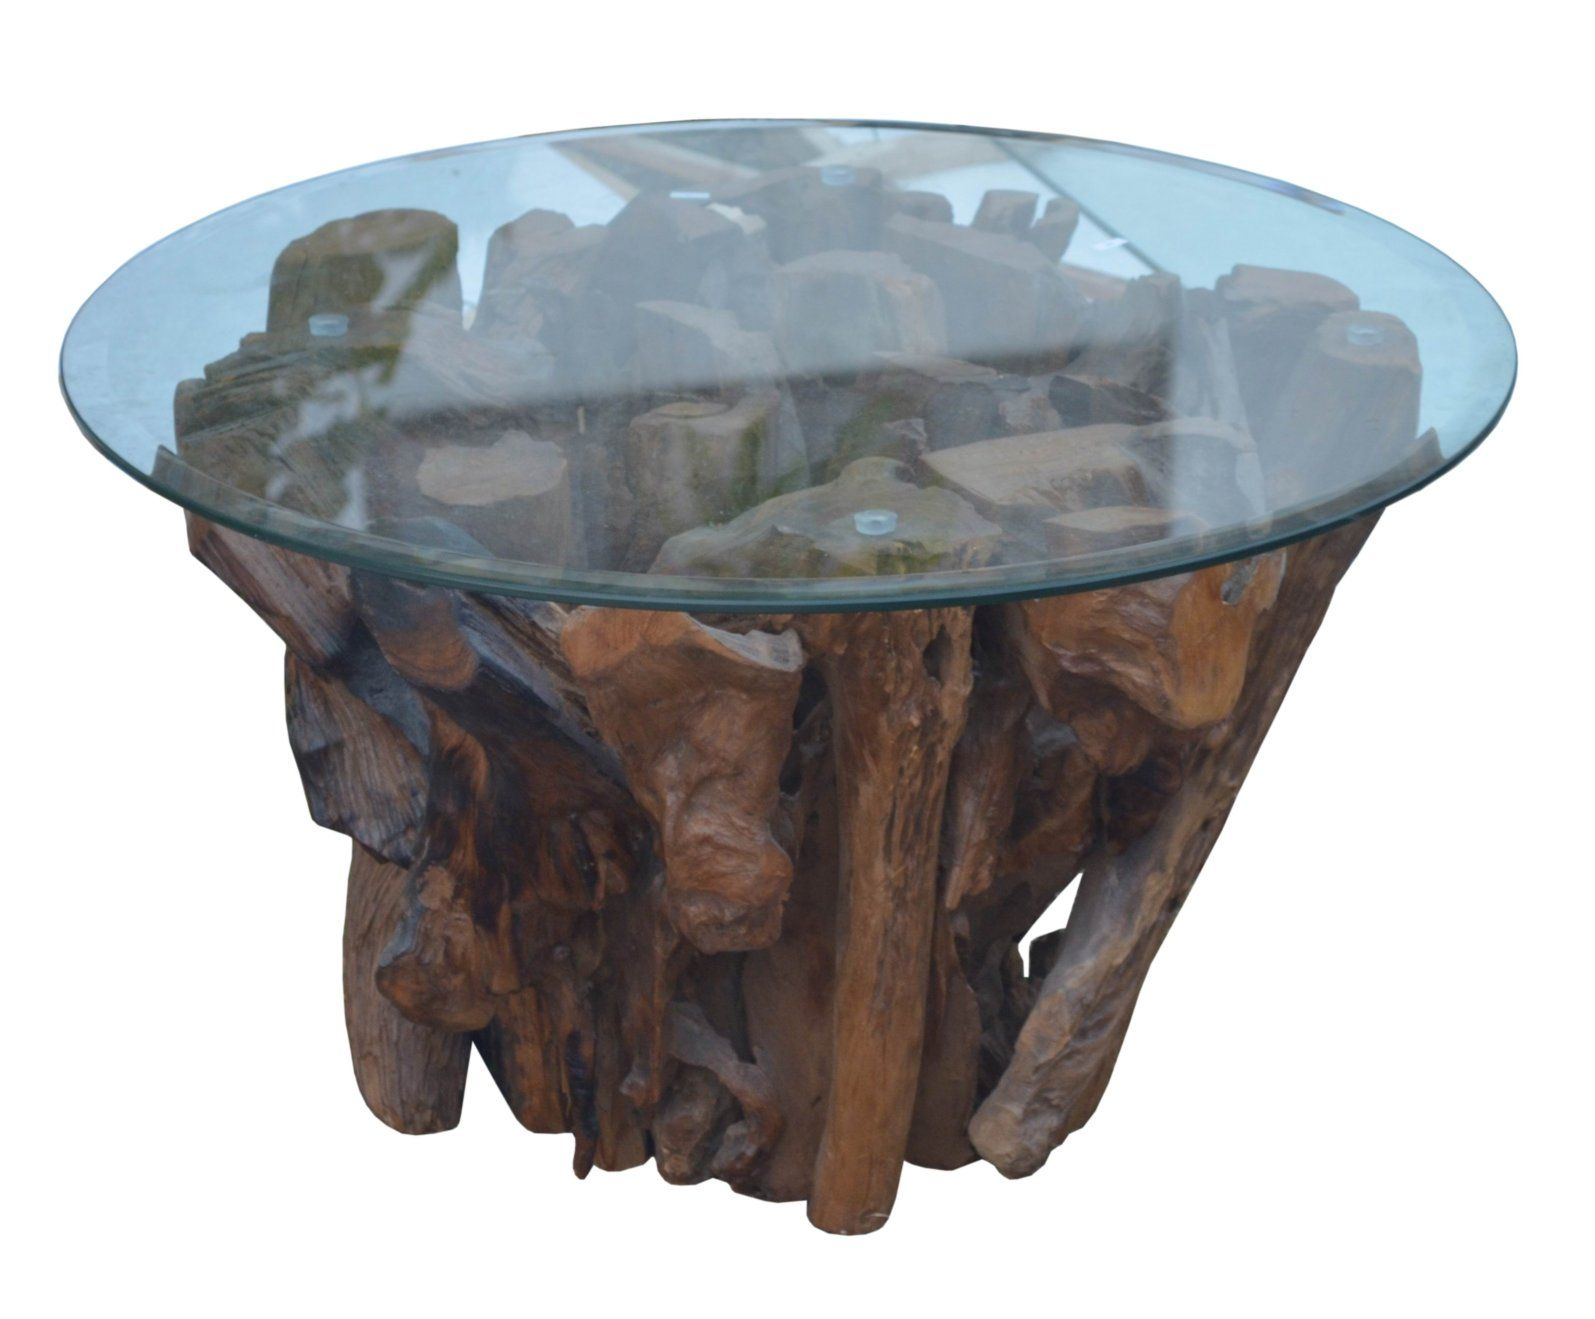 Driftwood coffee table with top glass with images